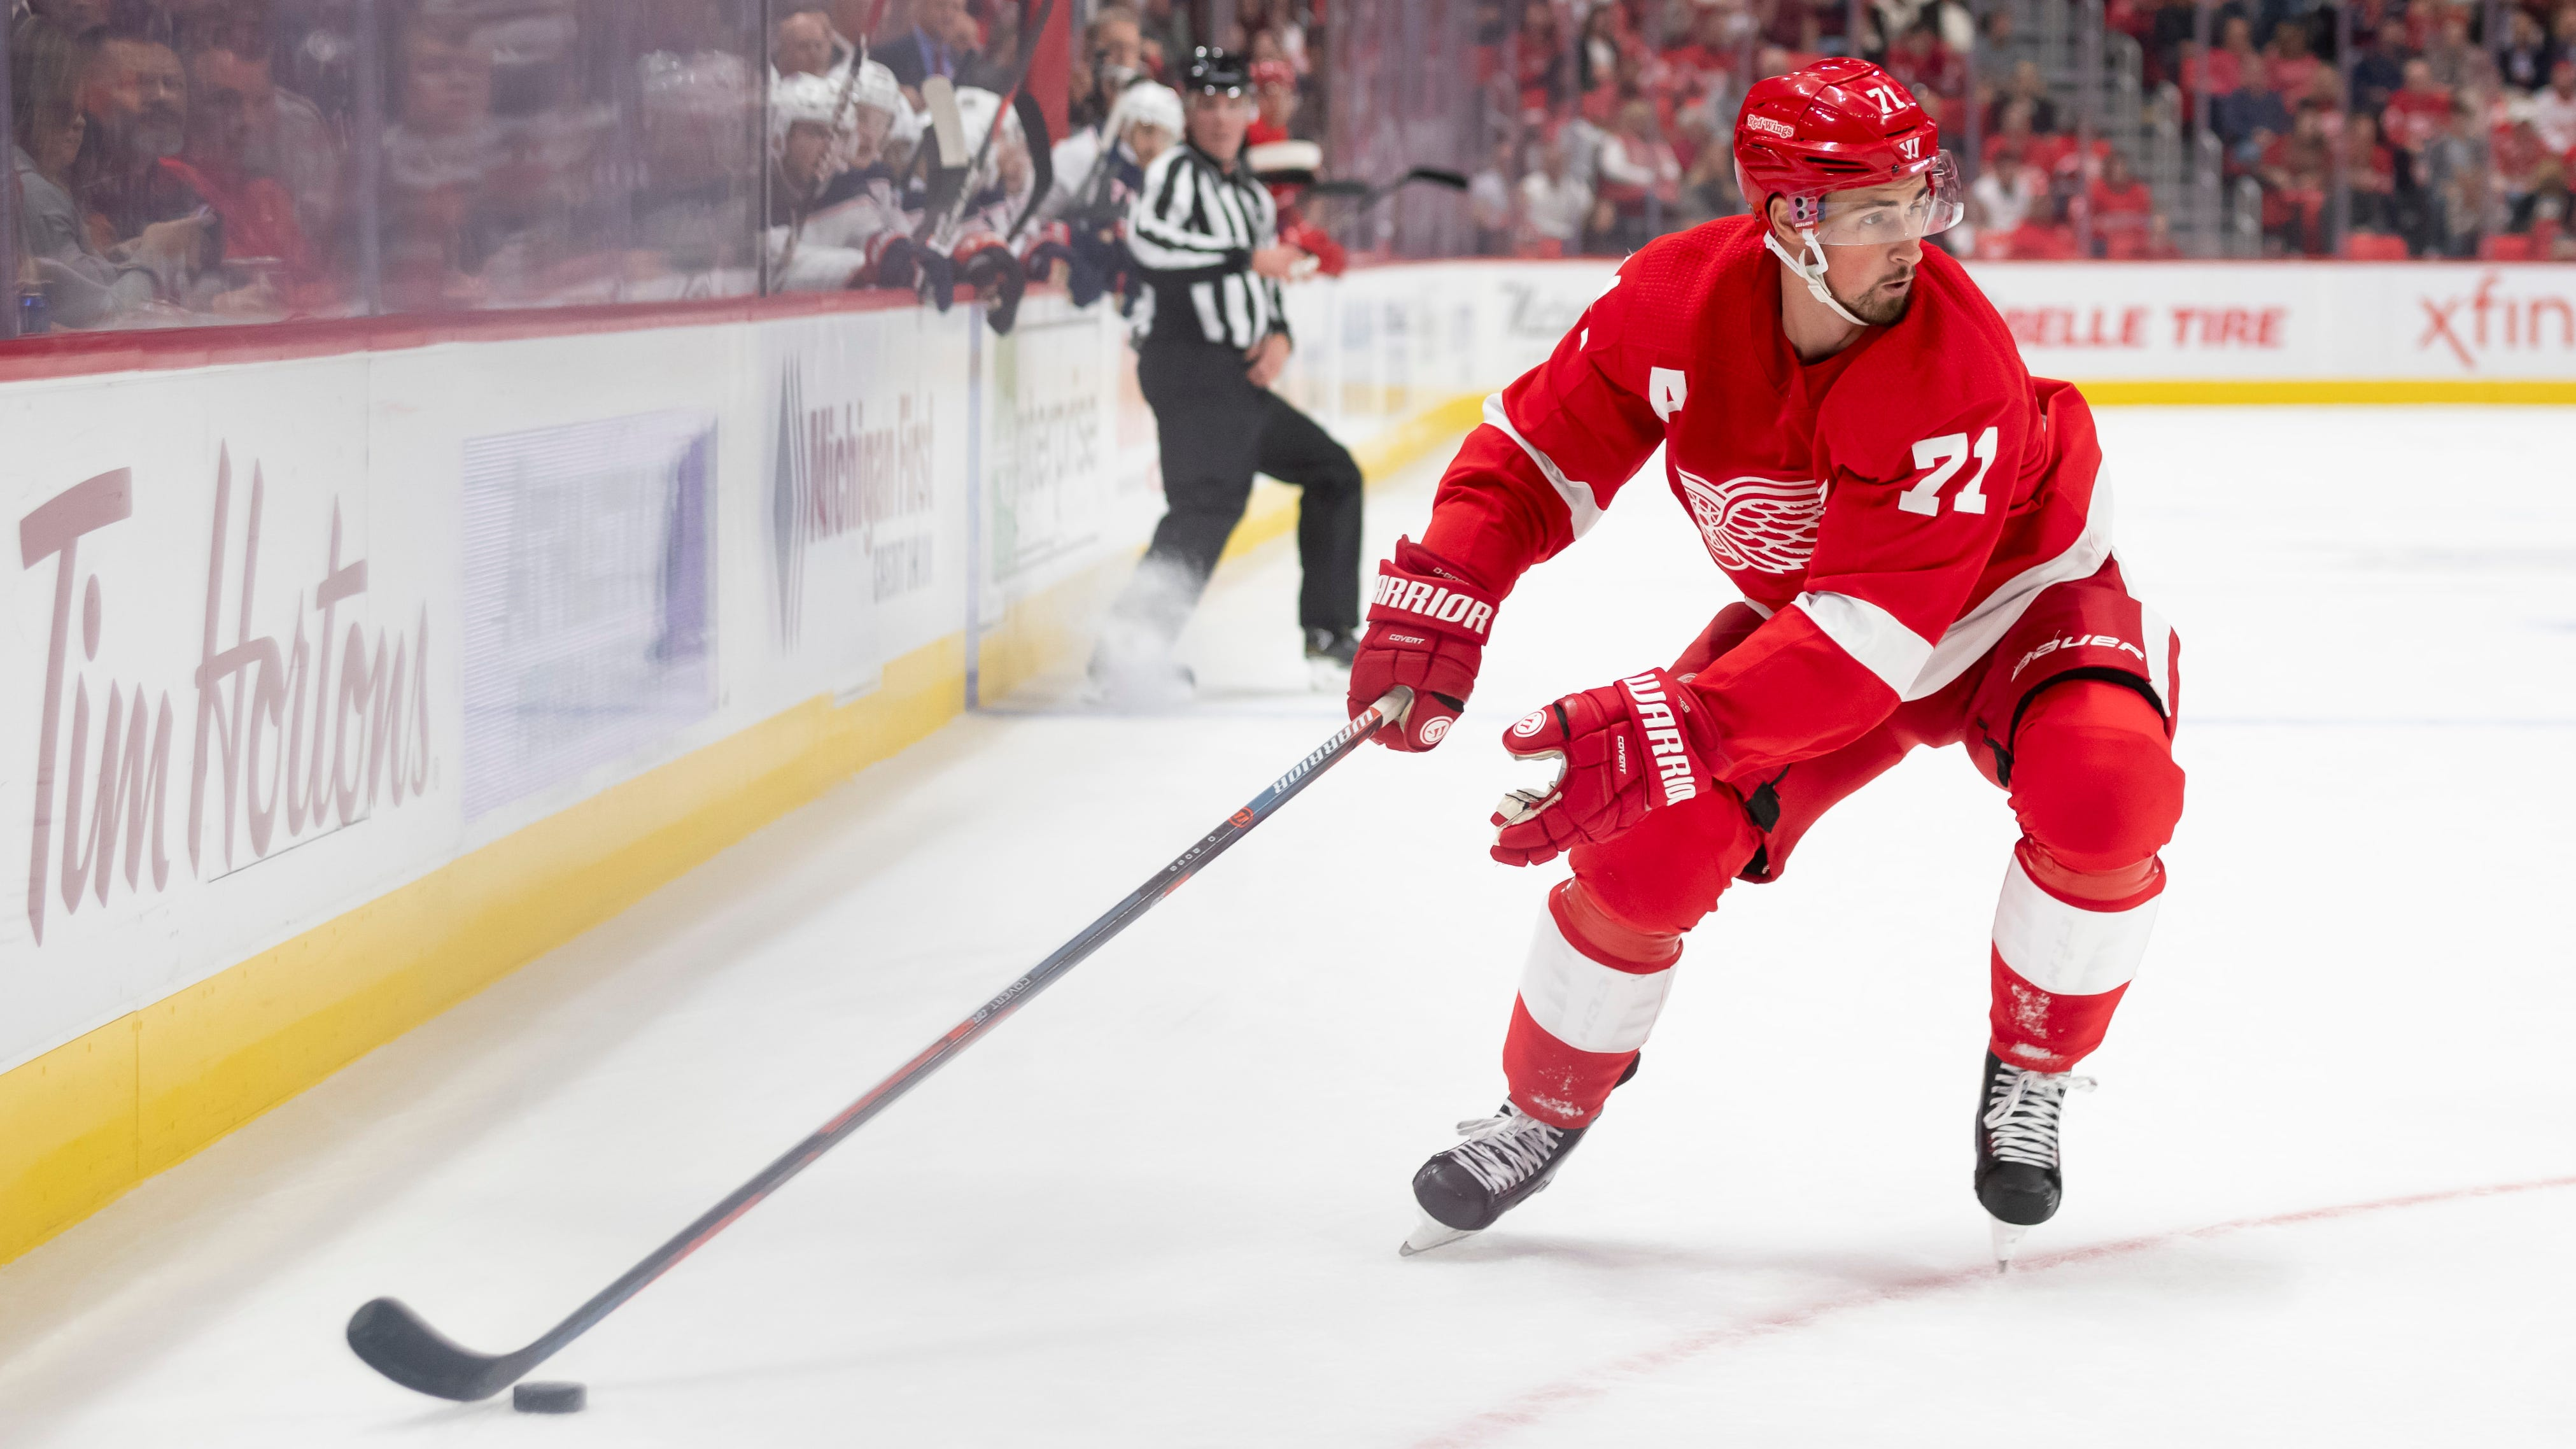 'Awesome' world championships a nice consolation for Blashill, Red Wings players